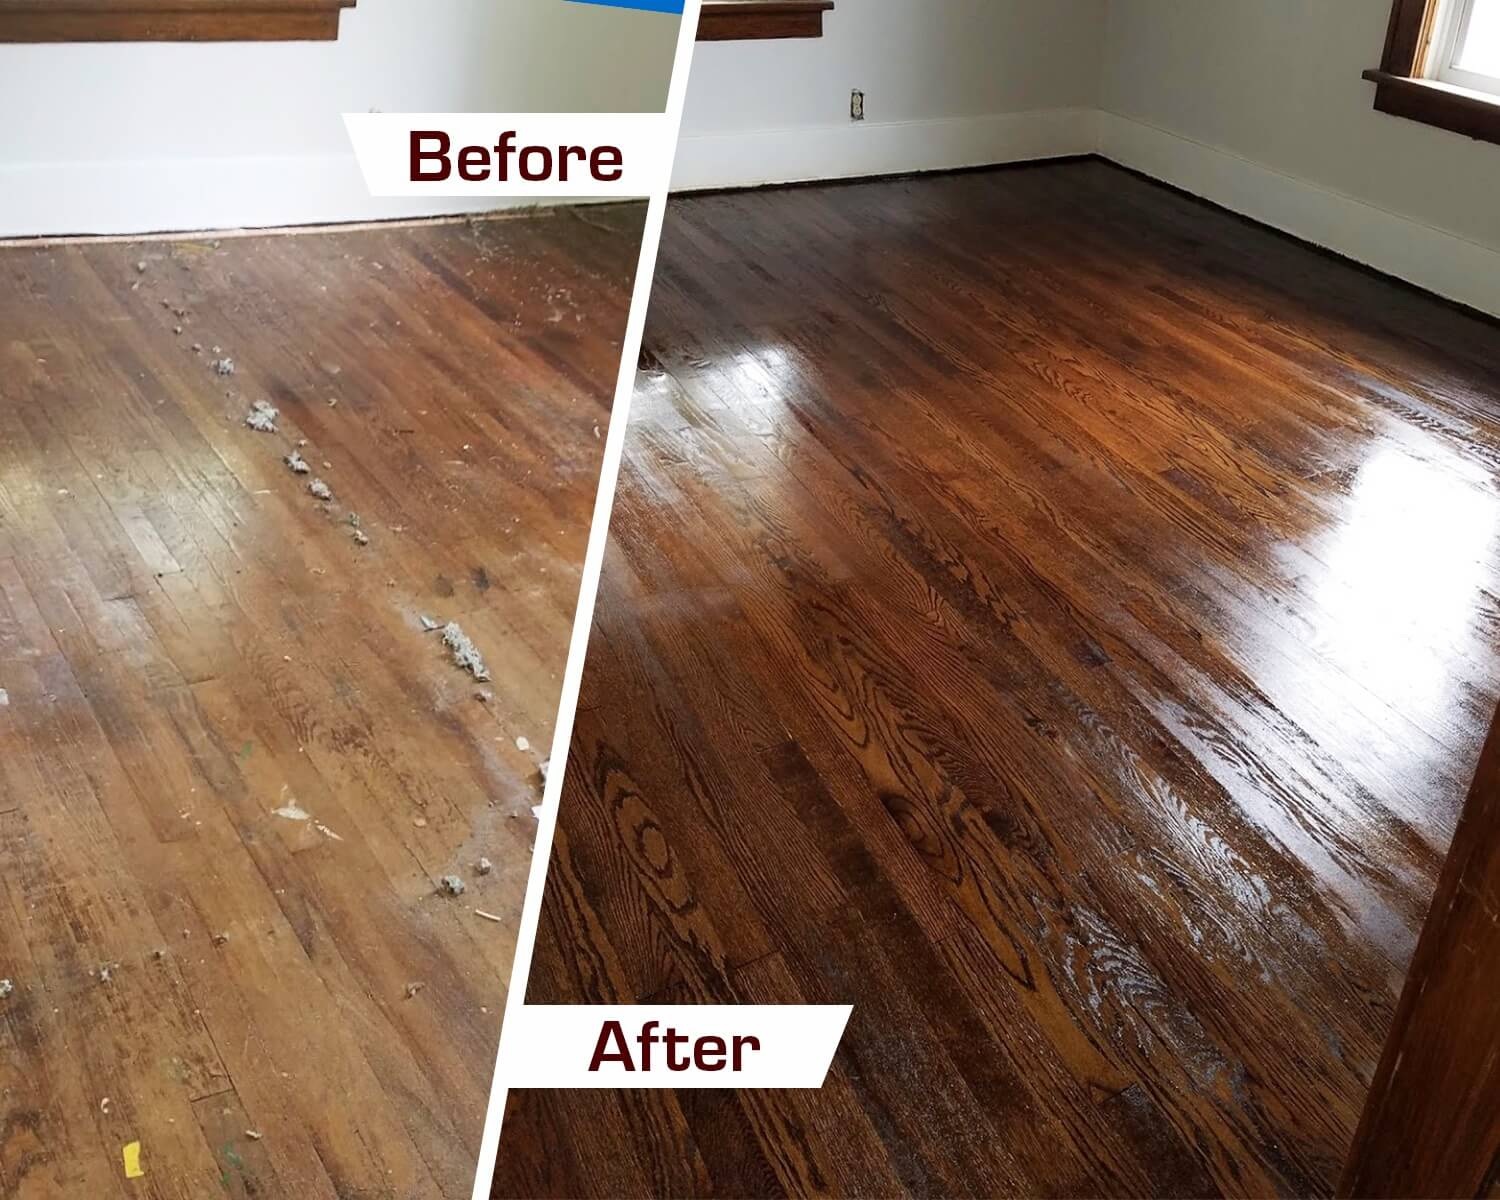 Refinishing Before and After Difference Hardwood Floors Sandy Springs